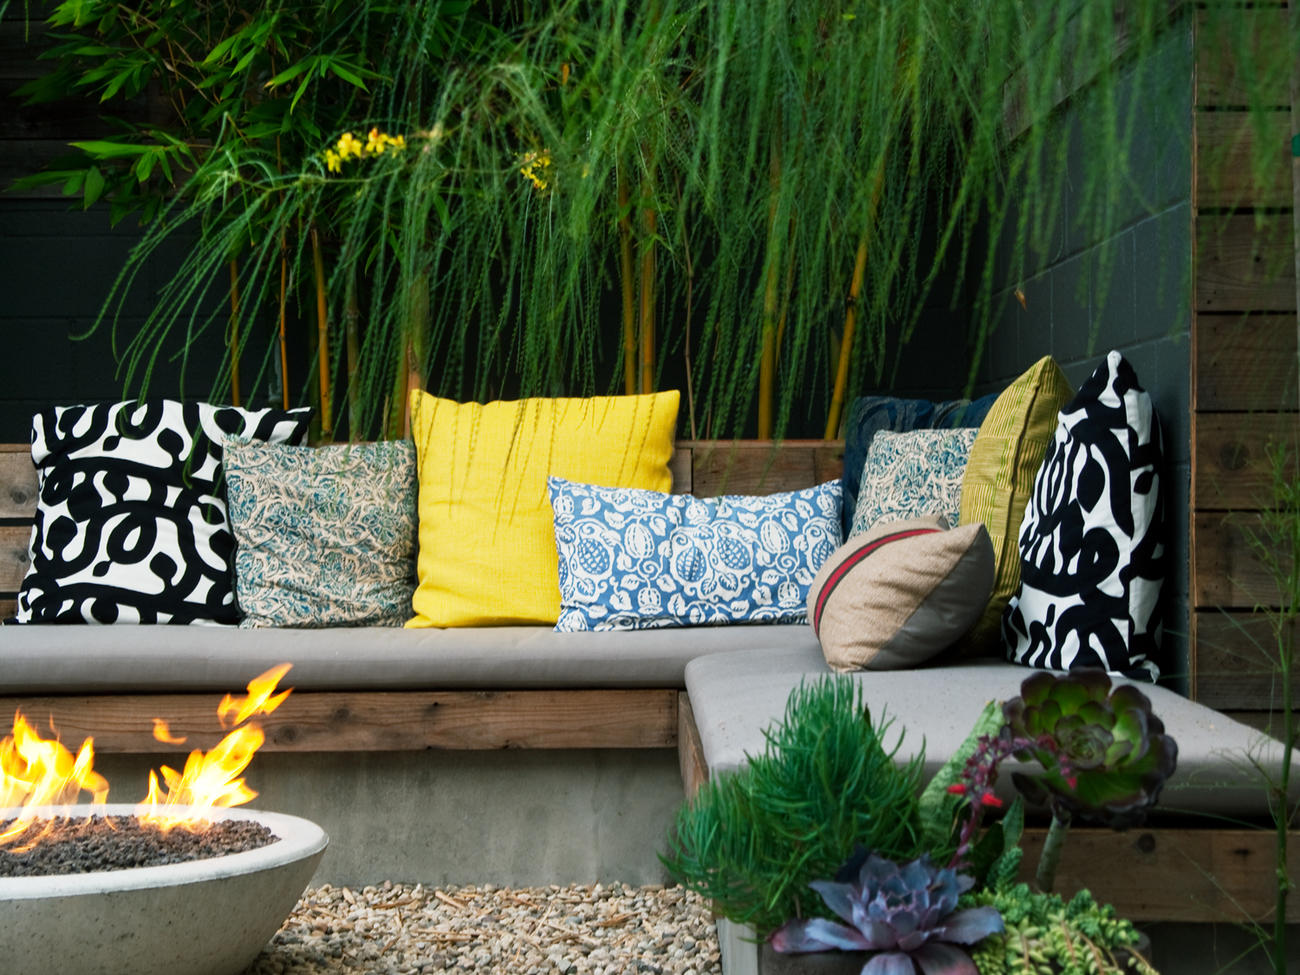 Backyard design guide sunset magazine for 38 garden design ideas